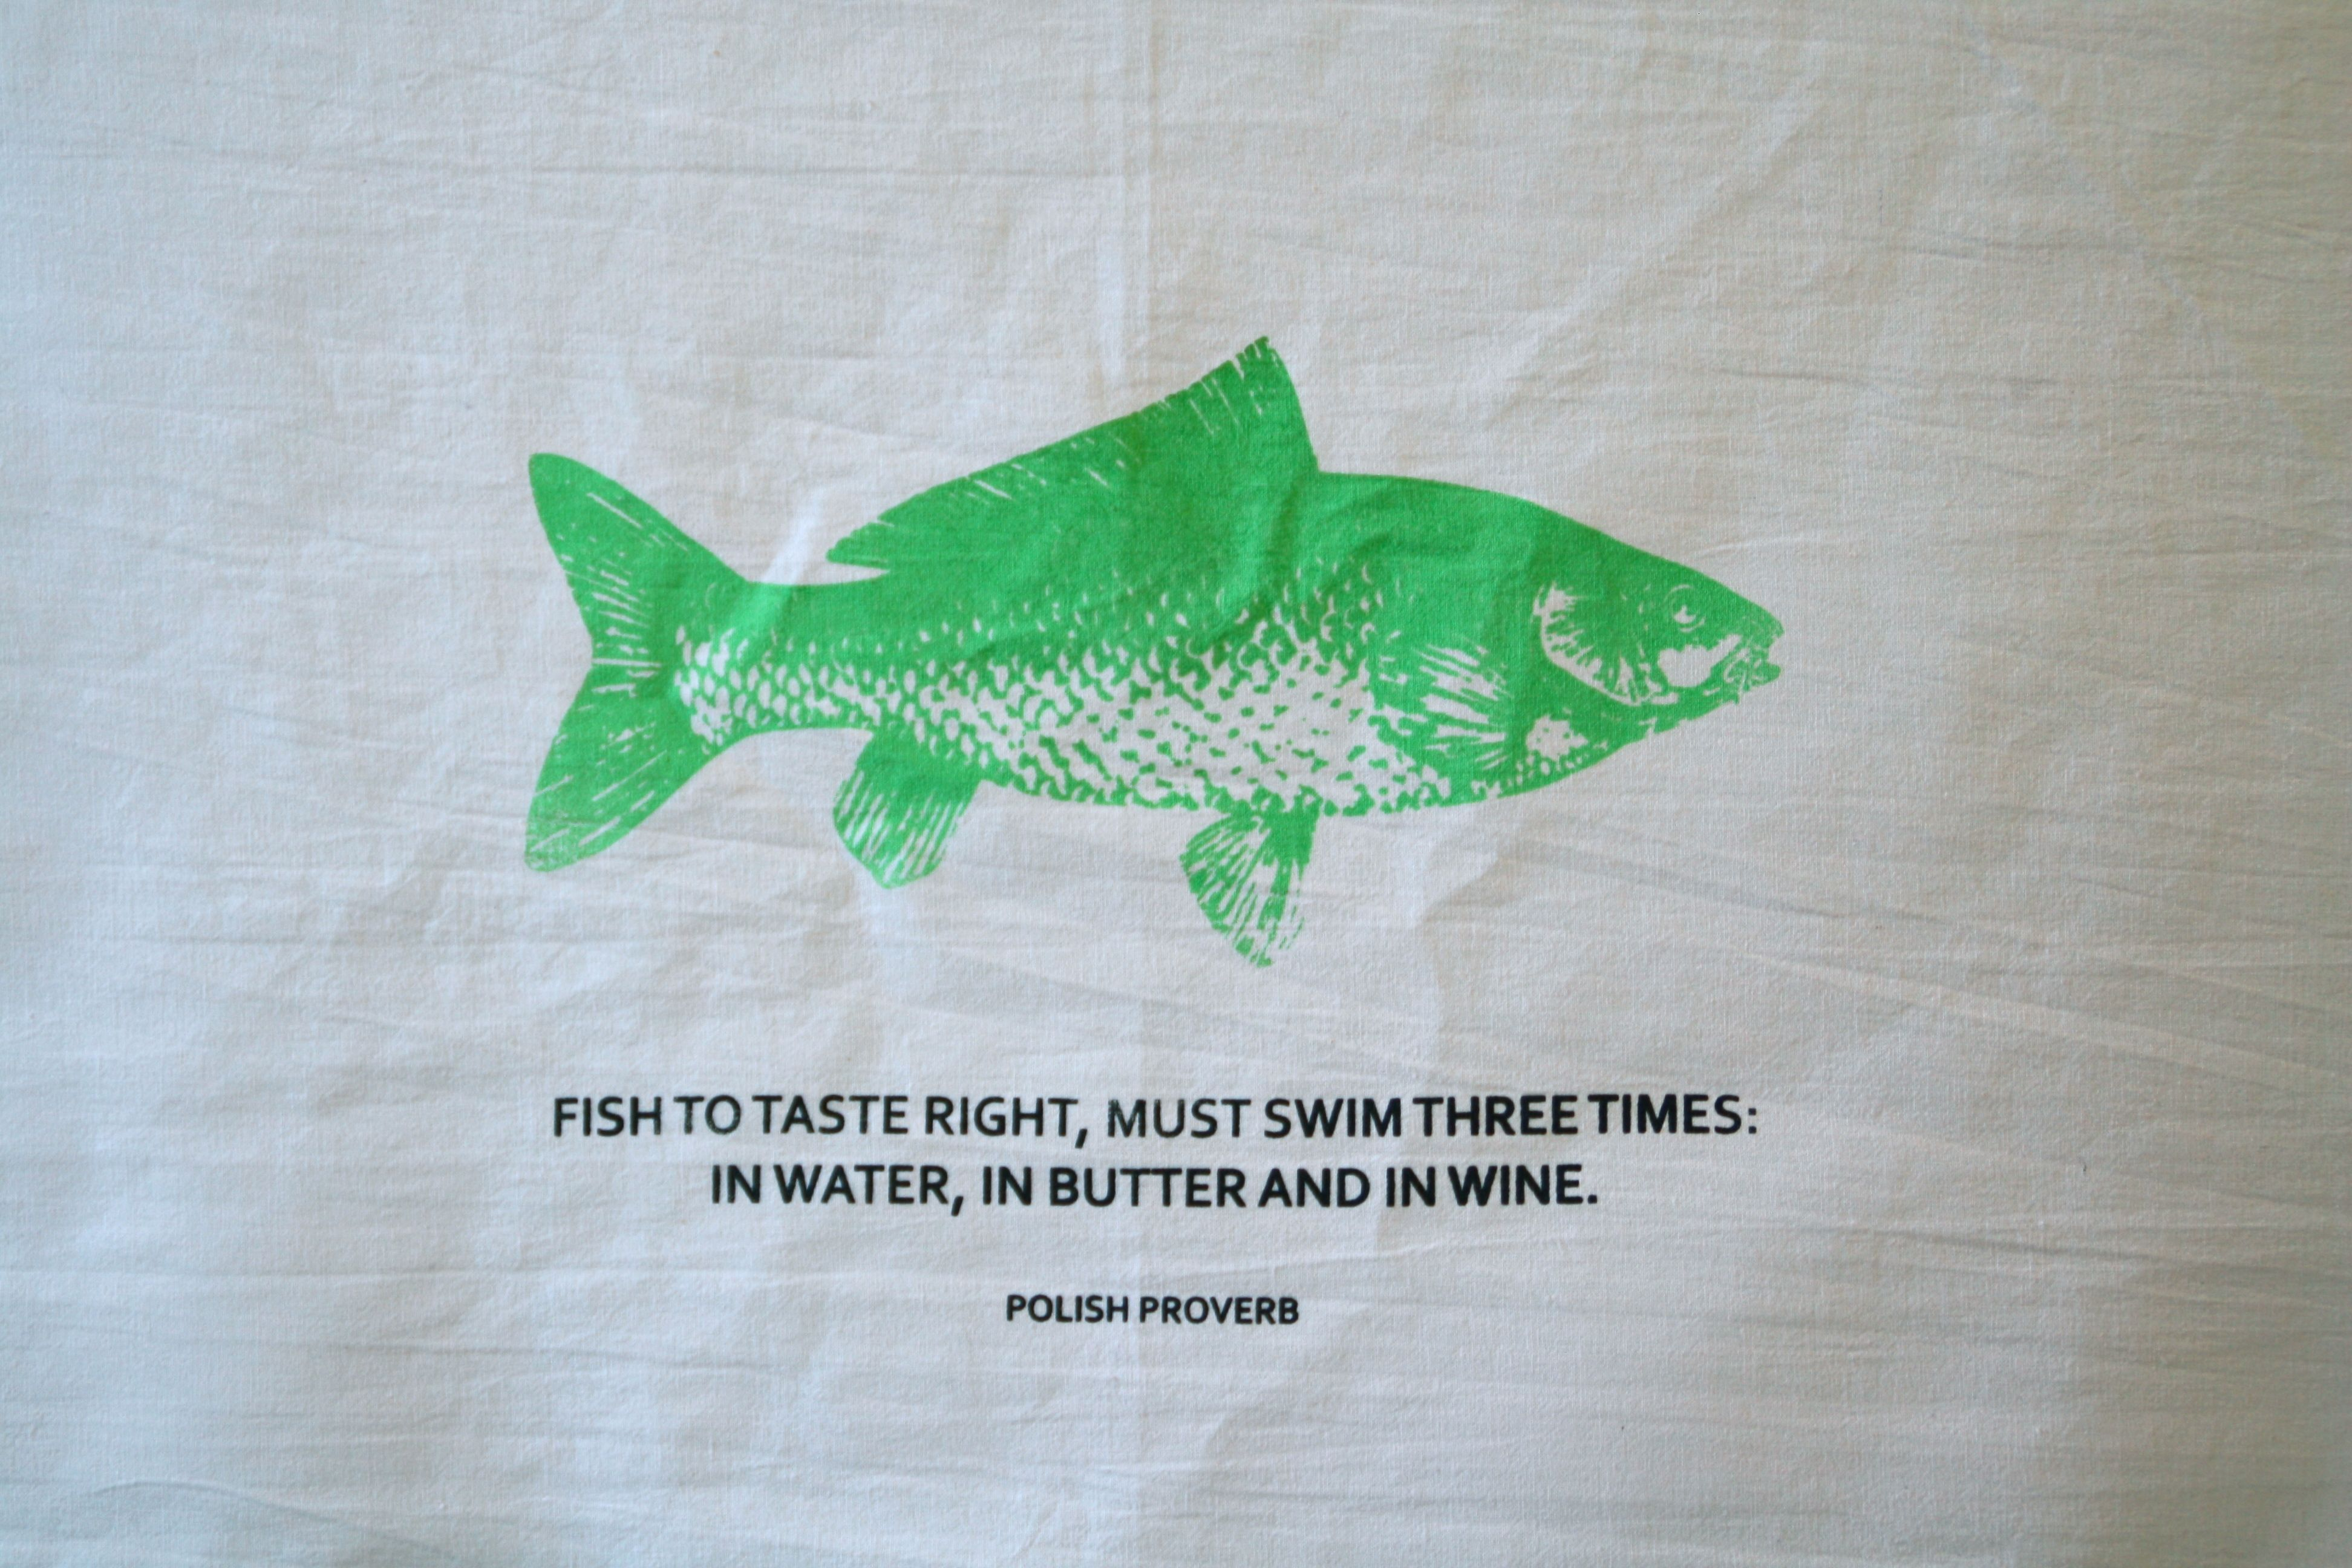 $13 (No. 12 \'Fish to Taste Right, Must Swim Three Times: In Water ...